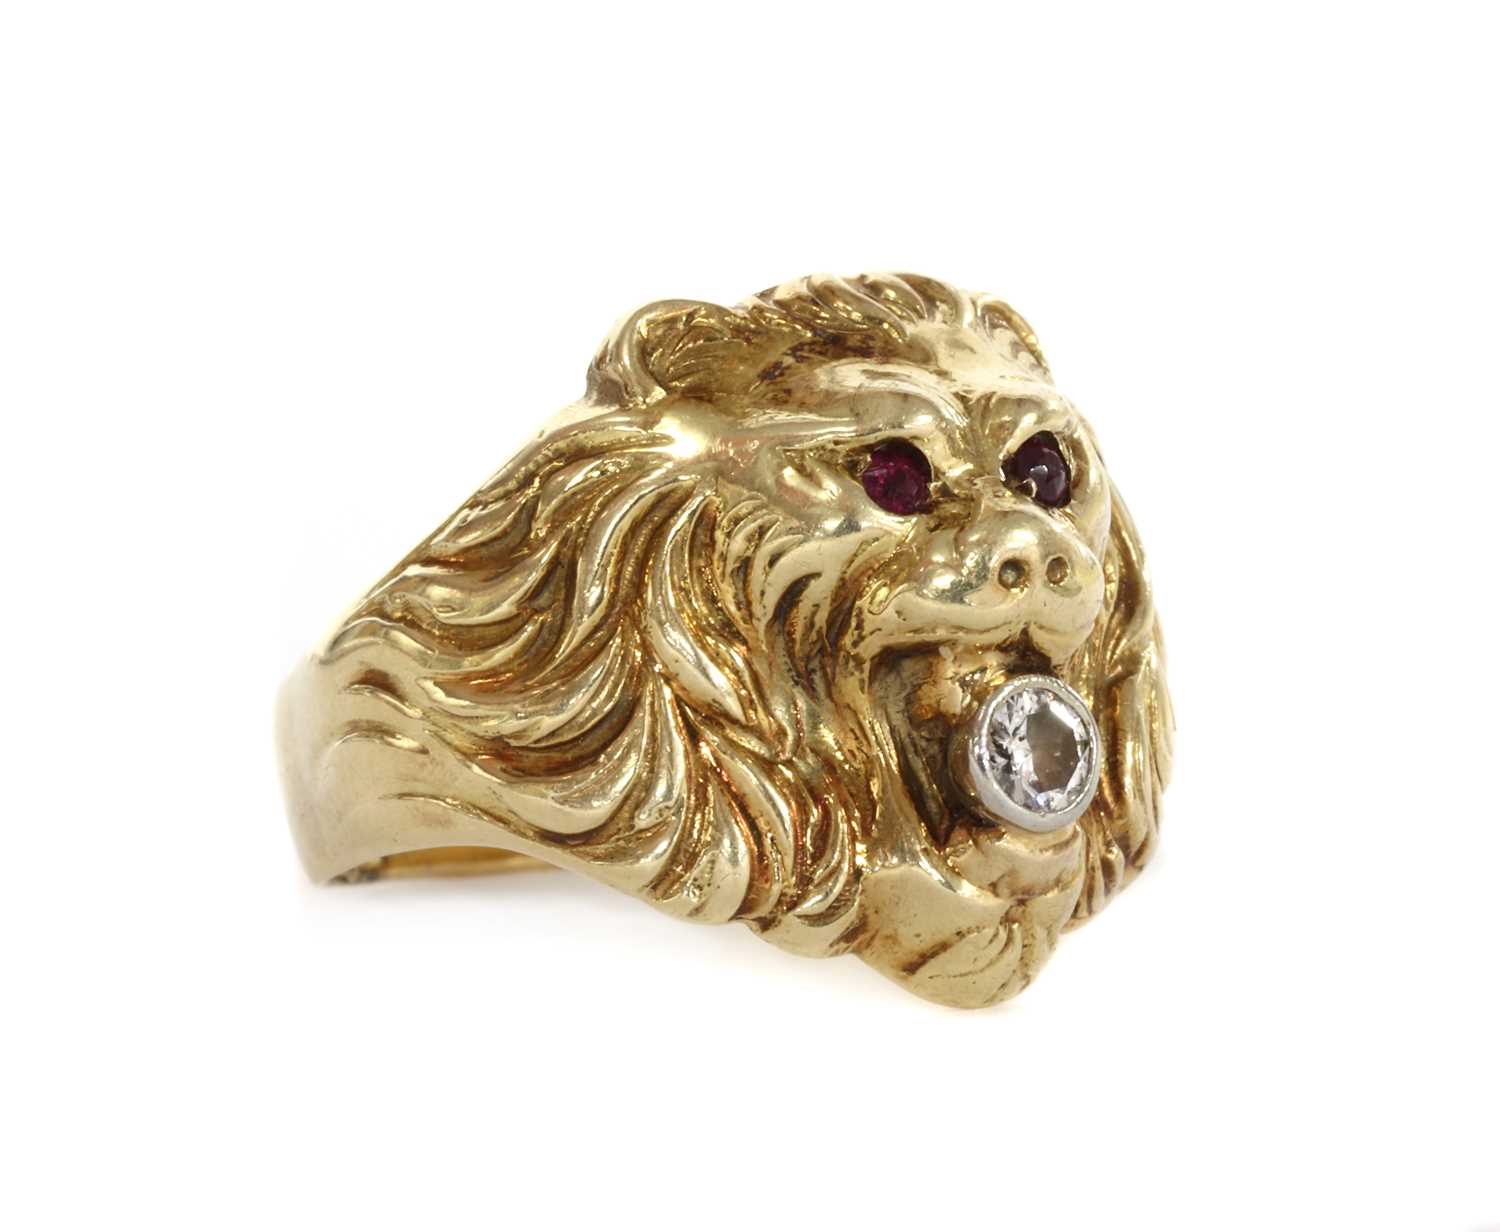 A gold lion head ring, - Image 2 of 3